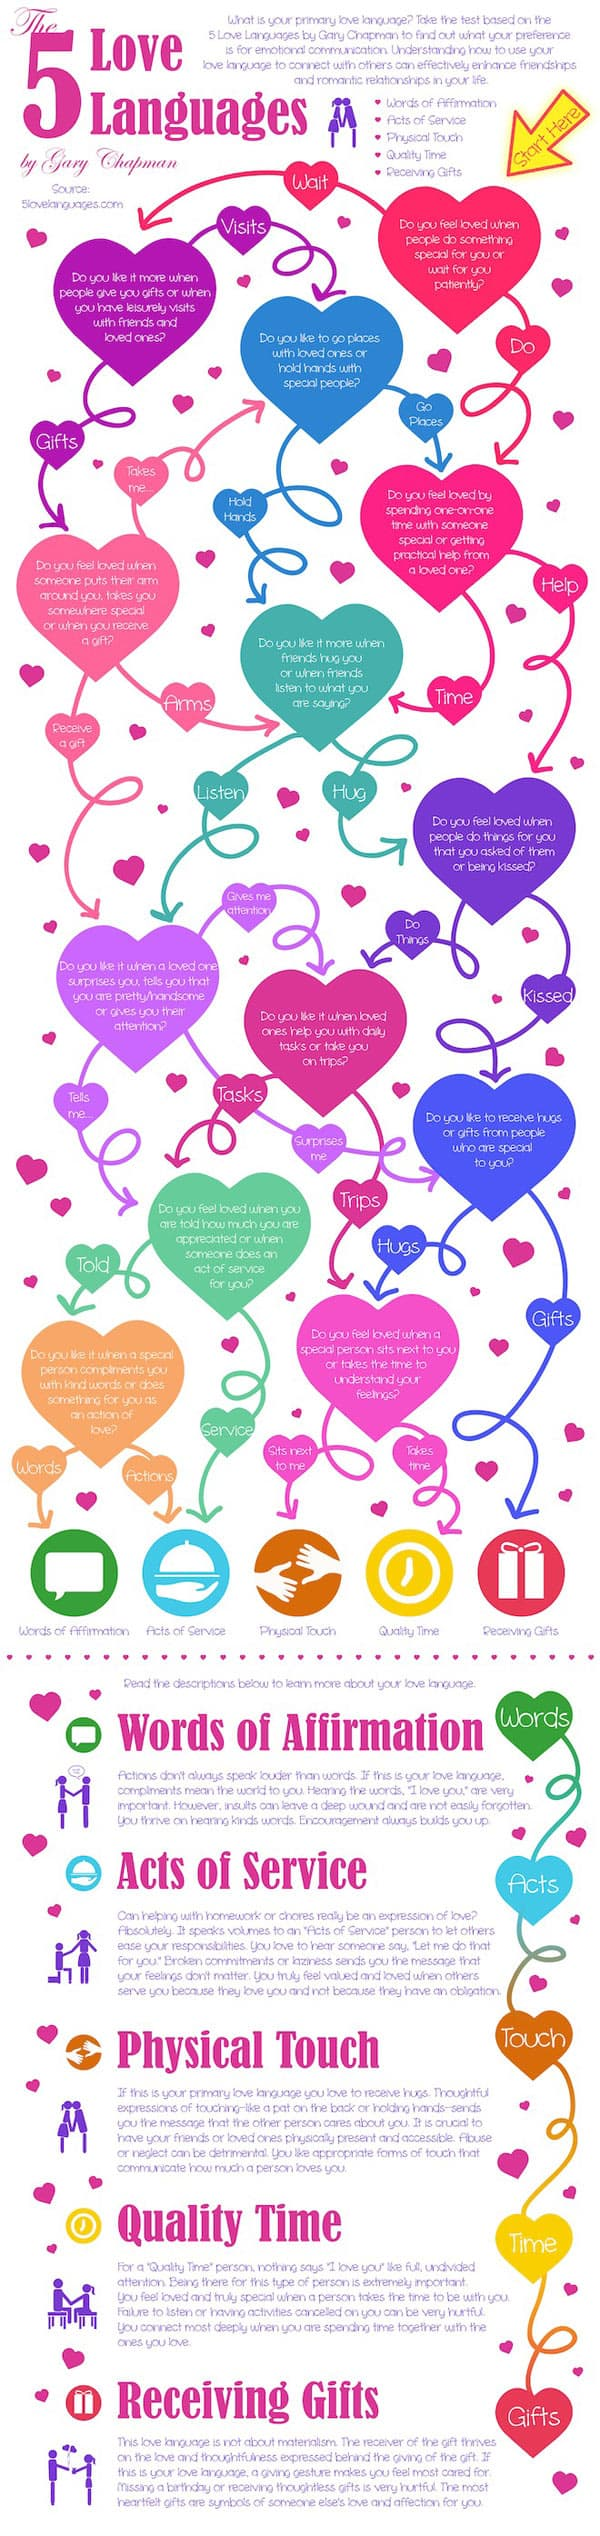 How-to-Speak-the-Same-Love-Language-as-Your-Partner_INFOGRAPHIC